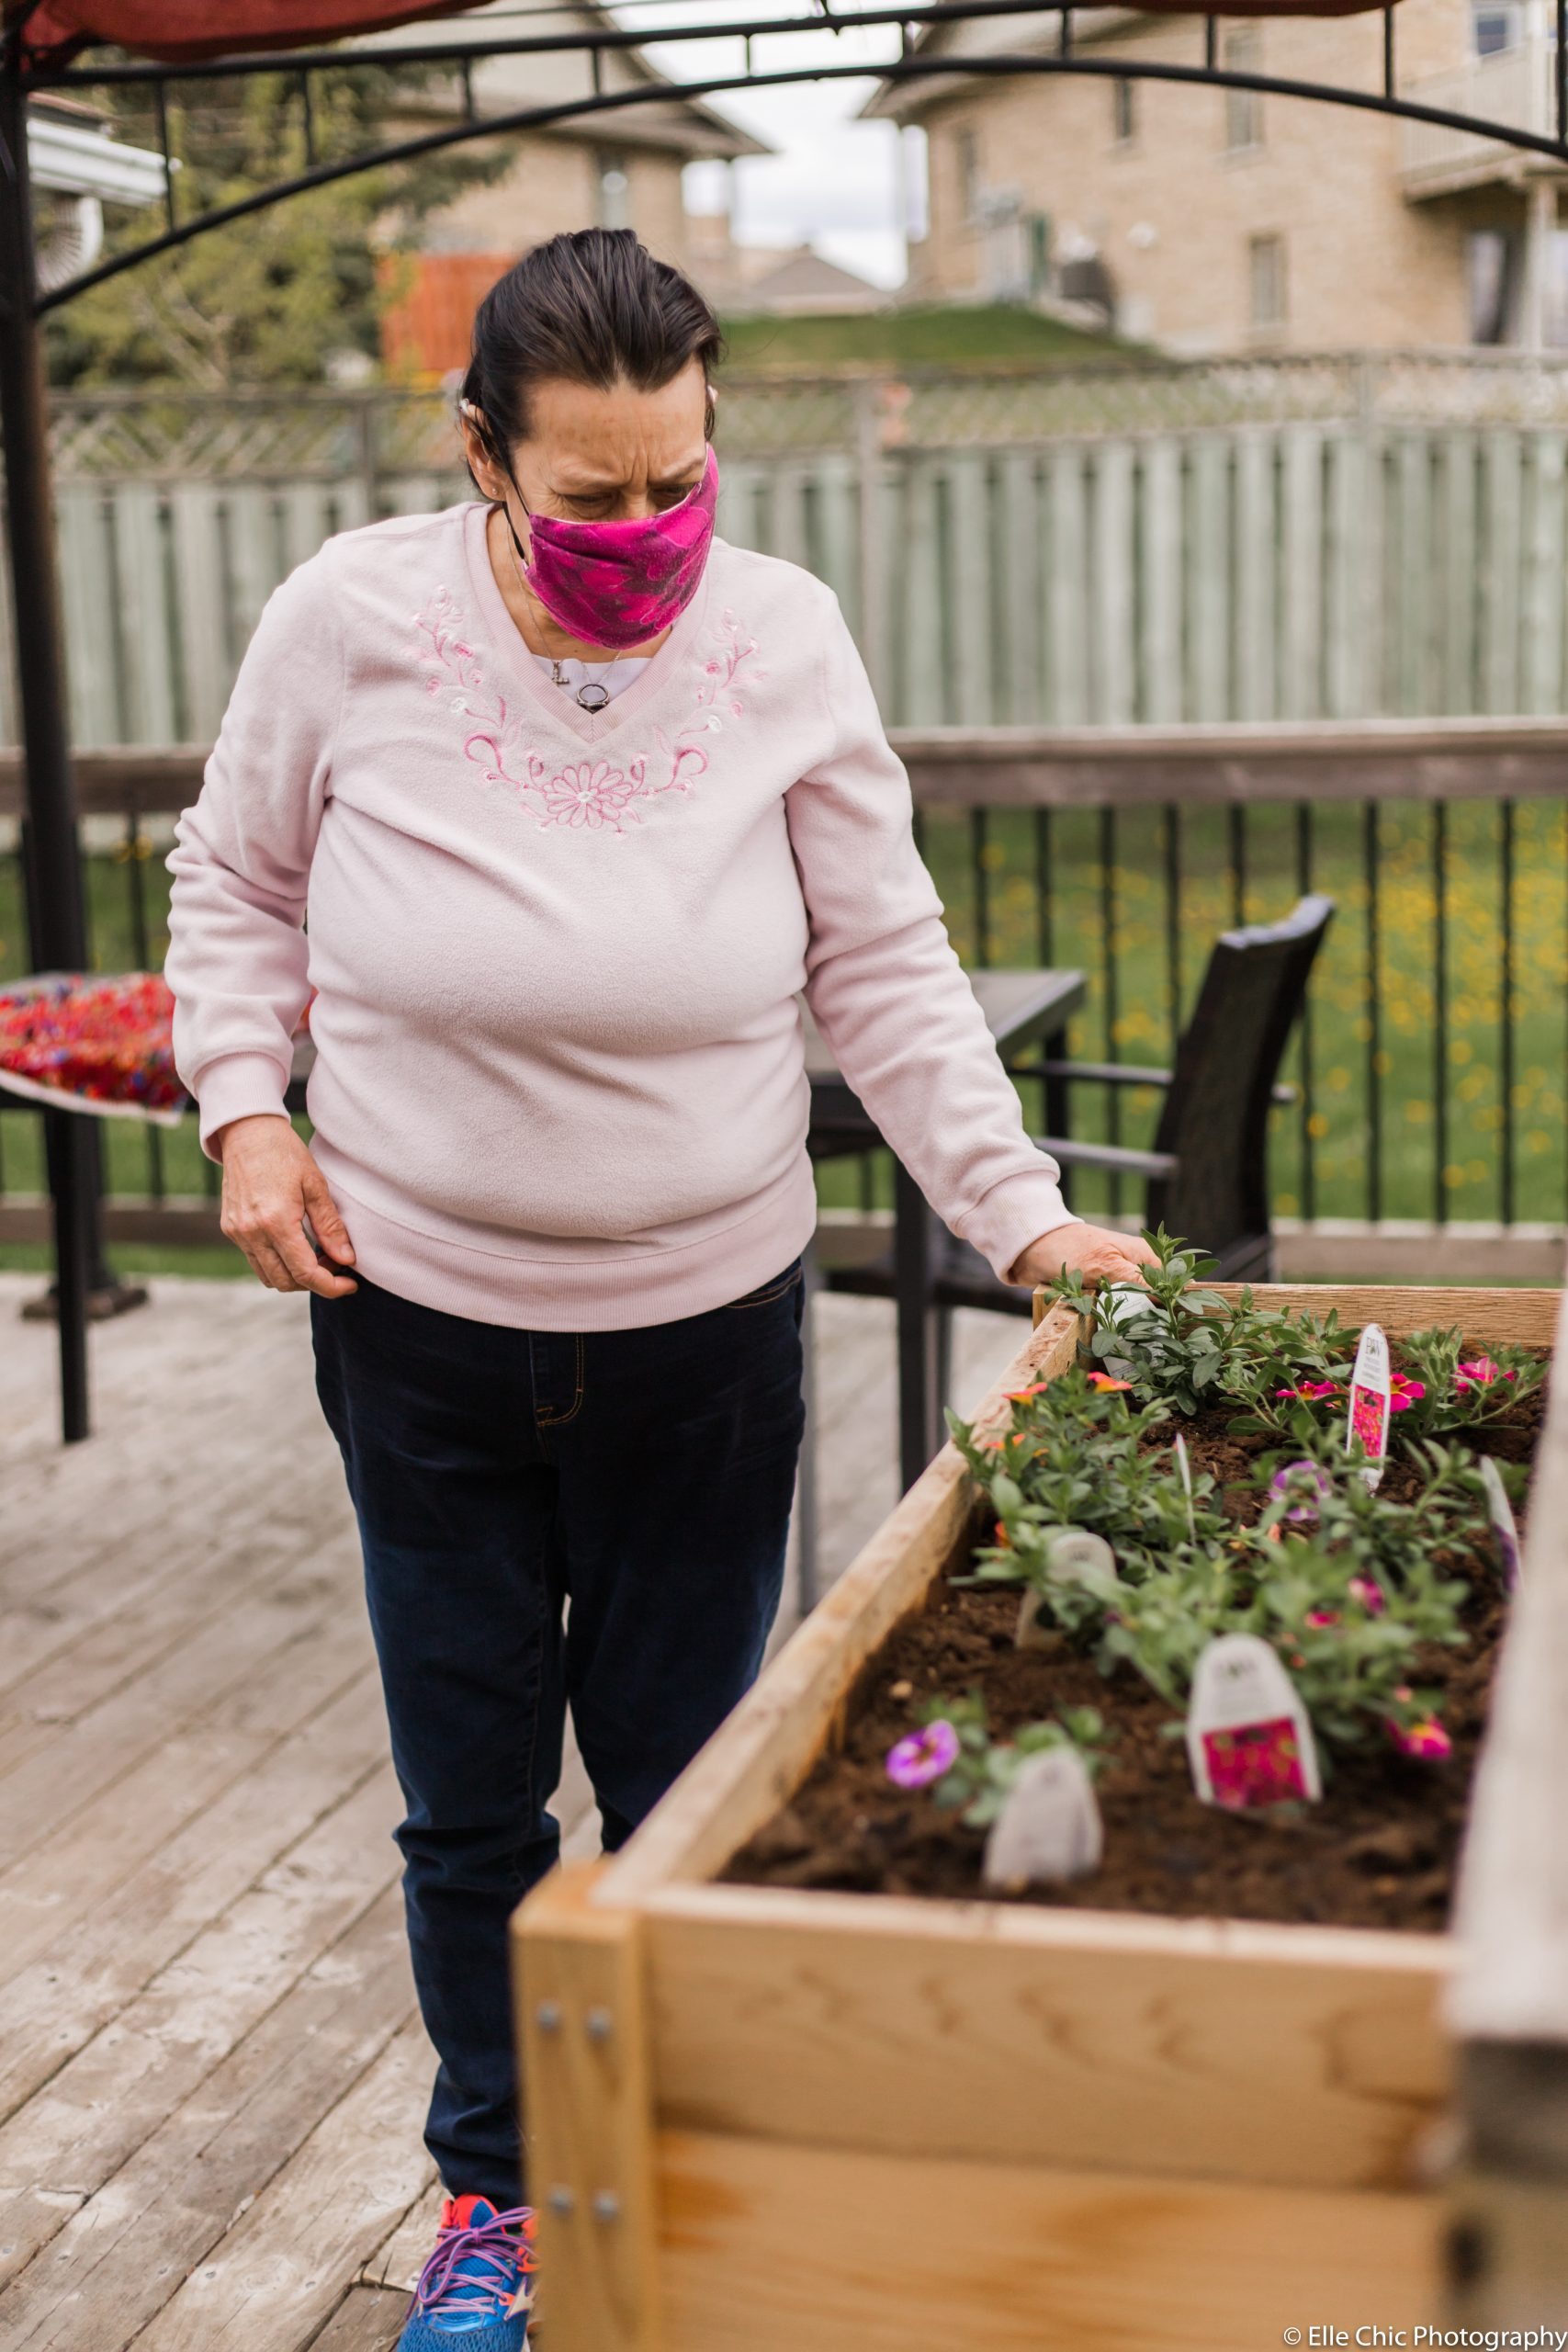 we've got this, photo series, one year later, covid-19, community living guelph wellington, elle chic photography, guelph ontario, disability, frontline heroes, terri-lynne, rug hooking, gardening